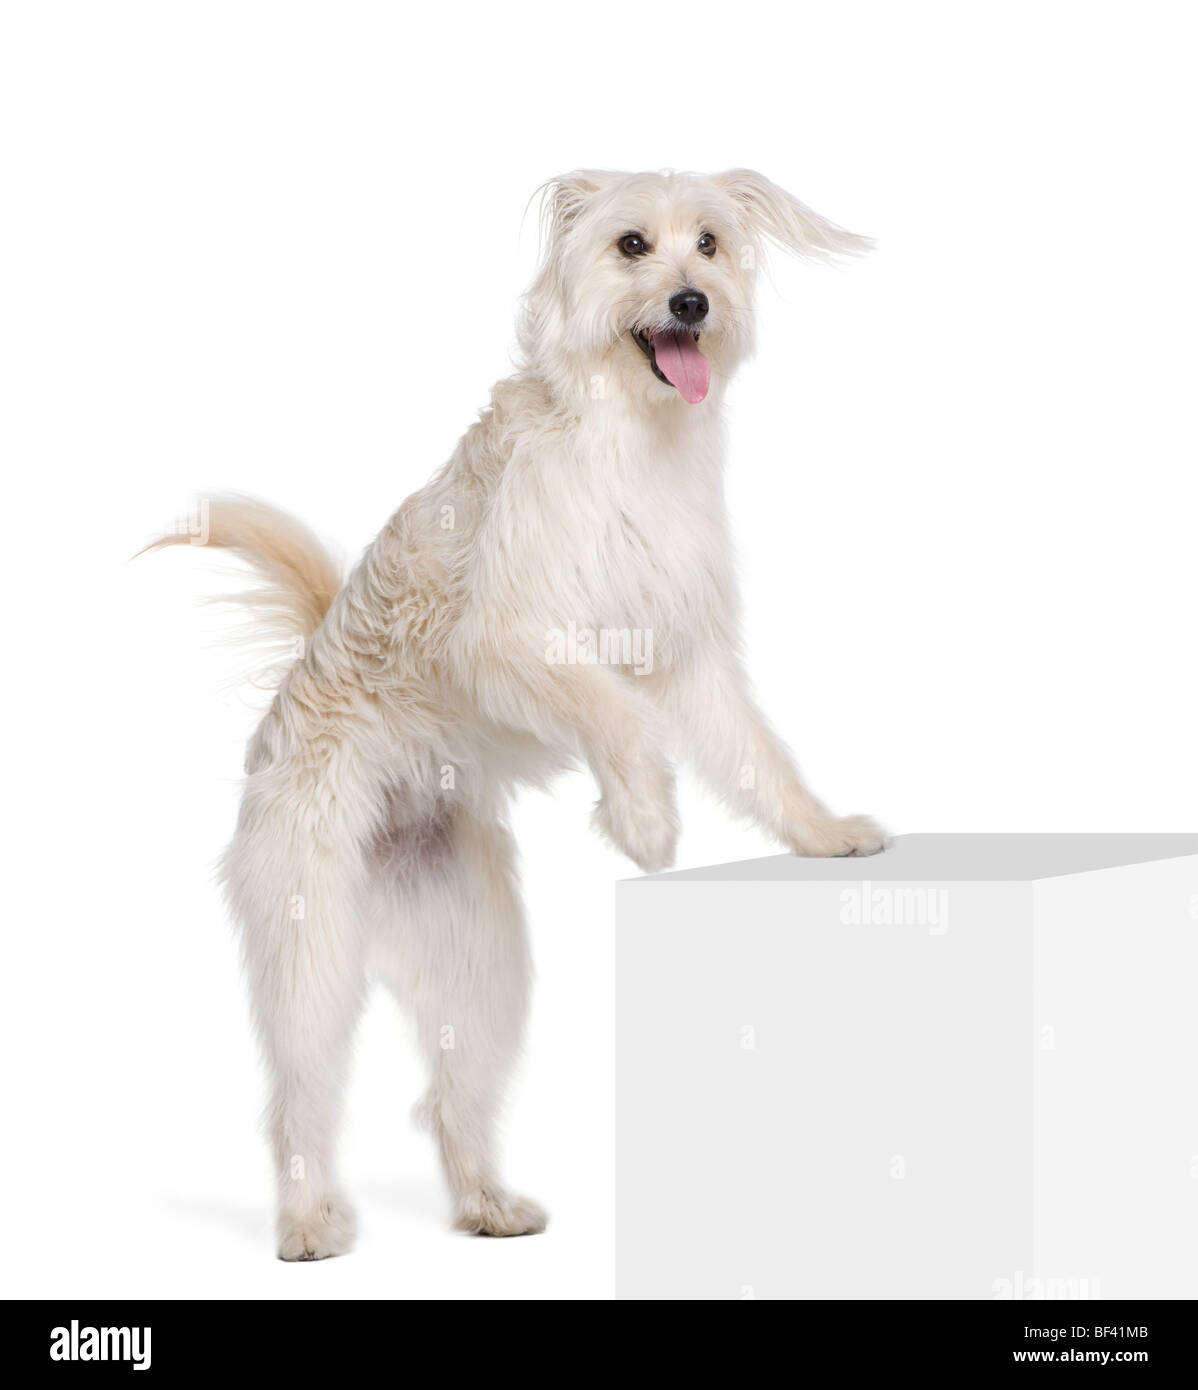 Pyrenean Shepherd, 2 years old, standing near pedestal in front of white background, studio shot - Stock Image